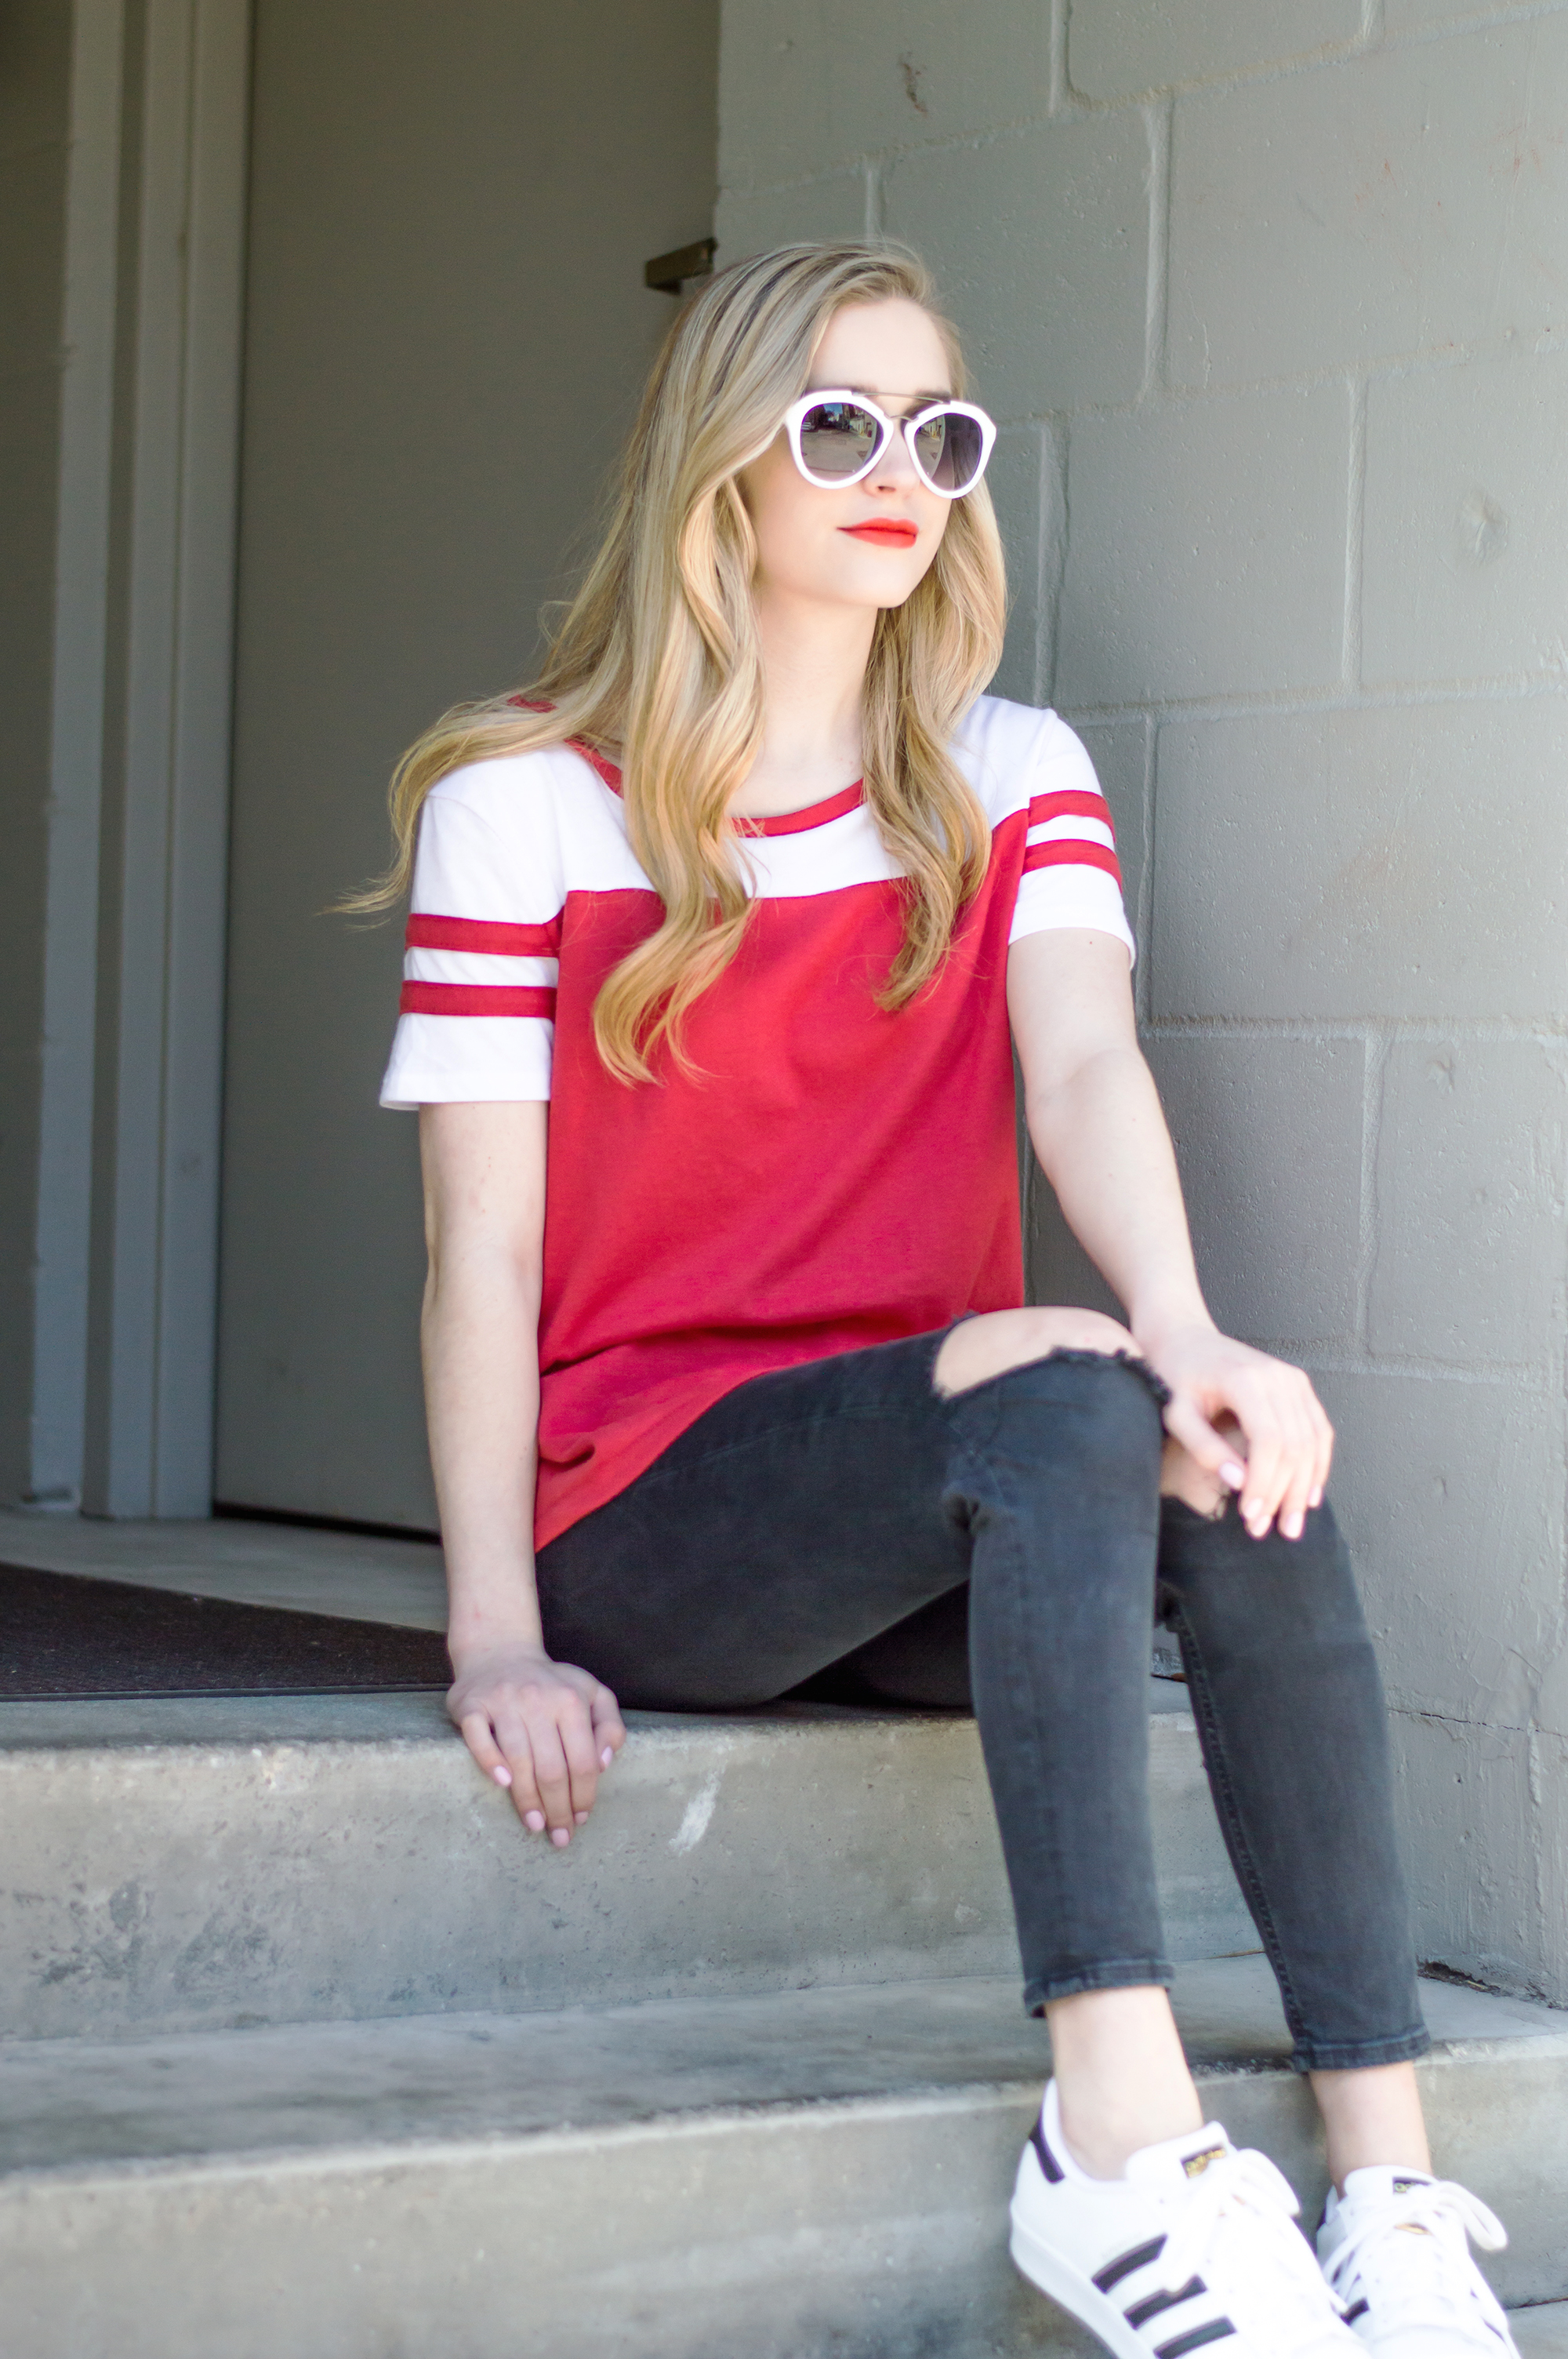 styelled-blog-elle-elisabeth-brick-city-closet-fashion-style-blogger-topshop-adidas-superstar-baseball-tee-valentines-ootd-casual-01